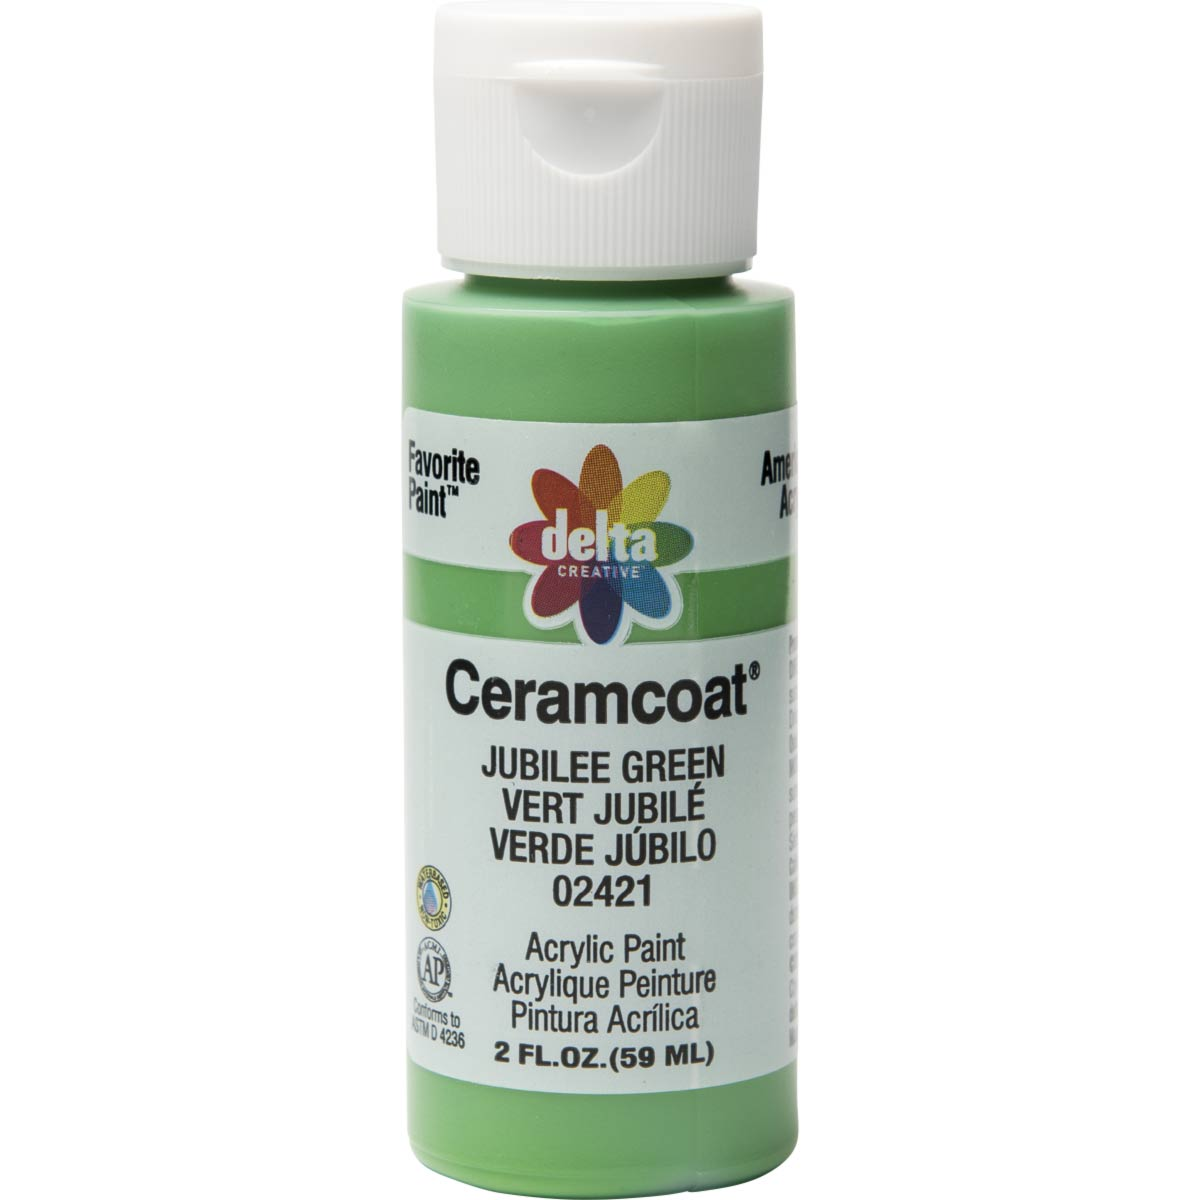 Delta Ceramcoat ® Acrylic Paint - Jubilee Green, 2 oz.